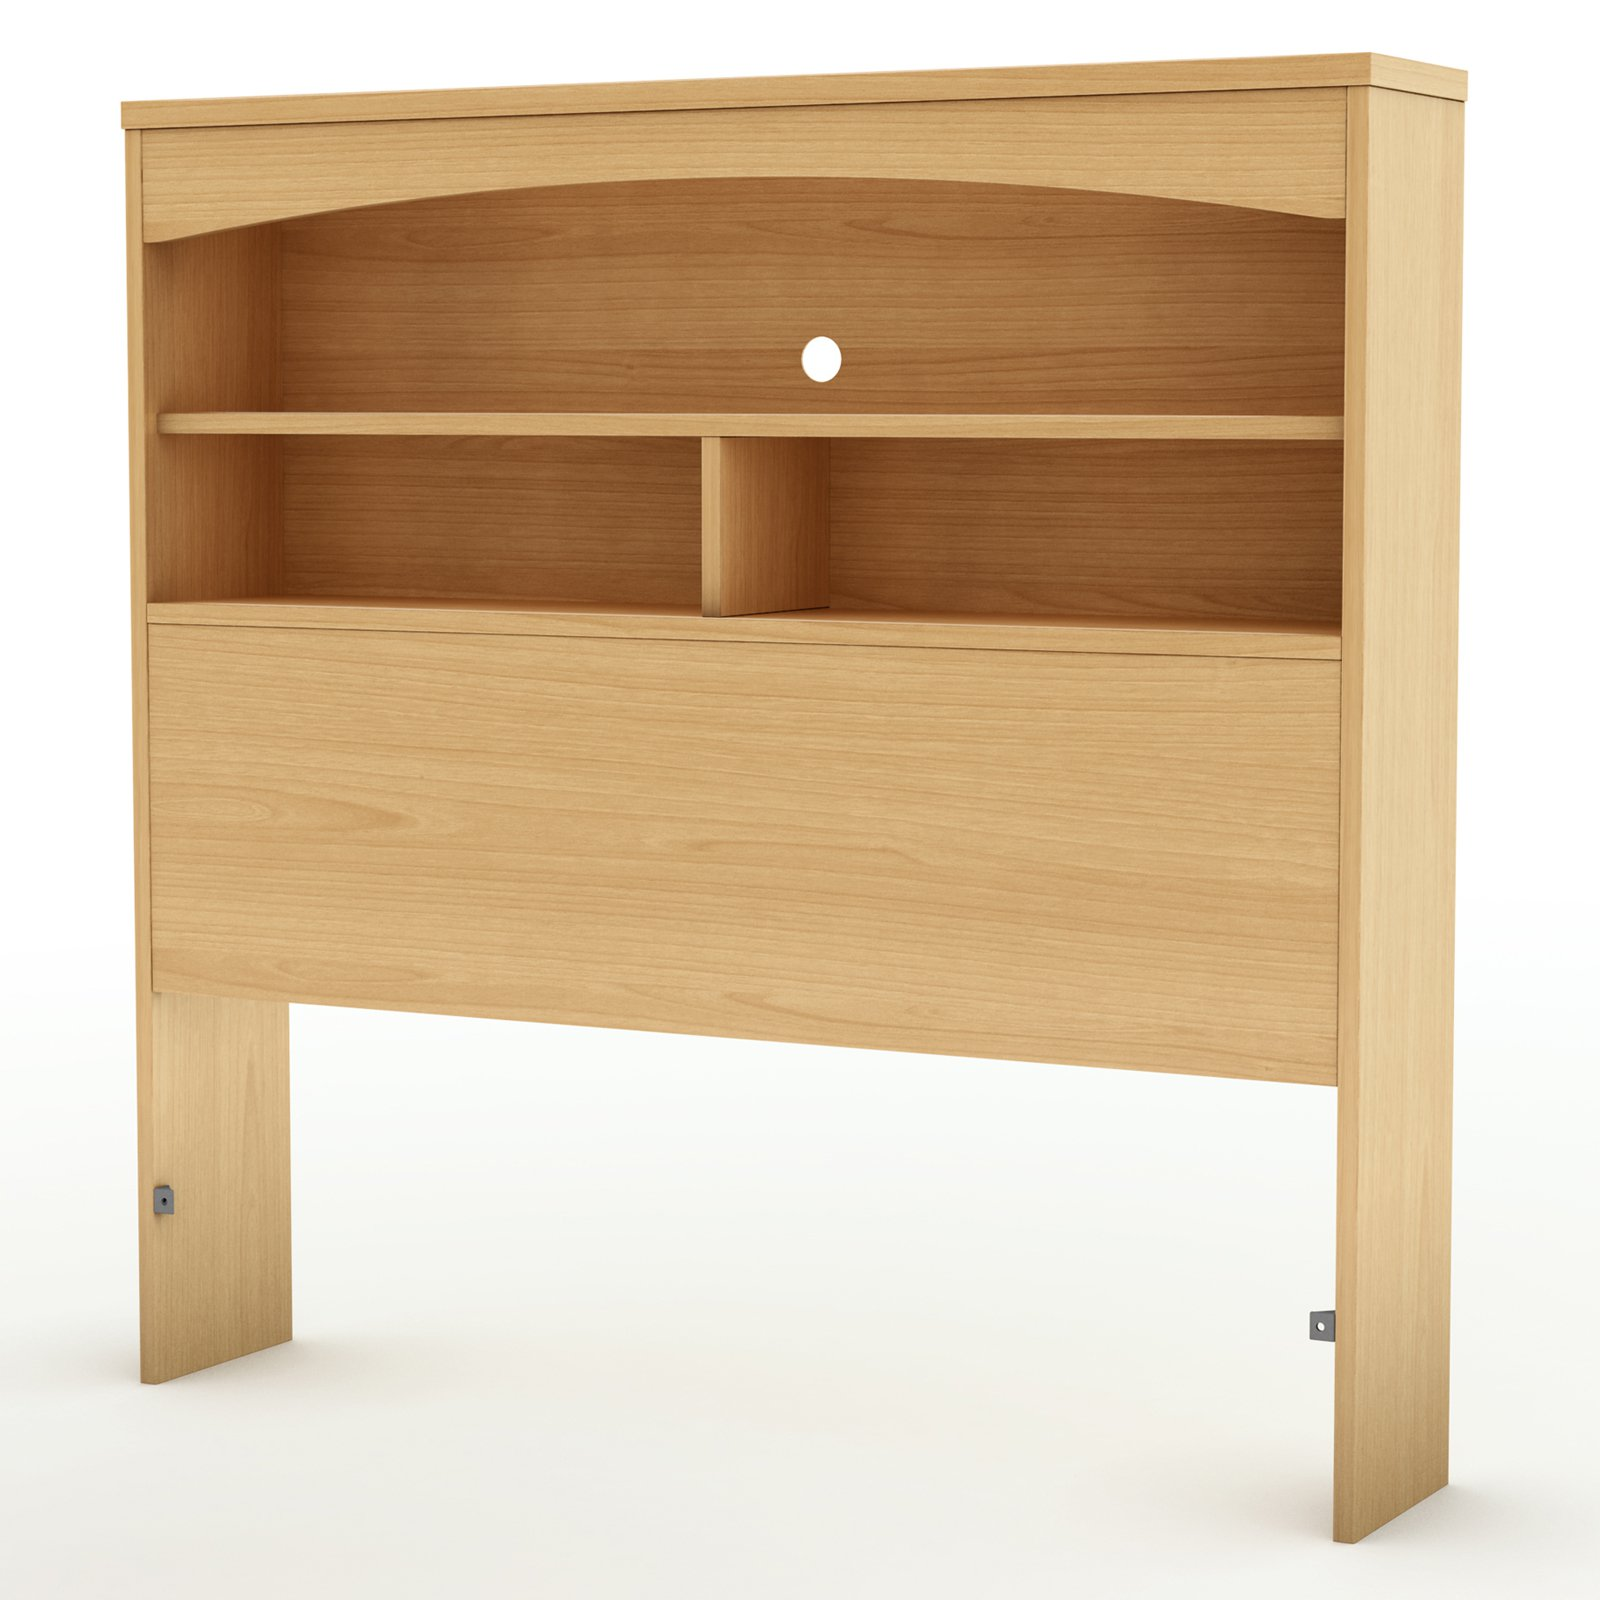 South Shore Bookcase Twin Headboard, Natural Maple by South Shore